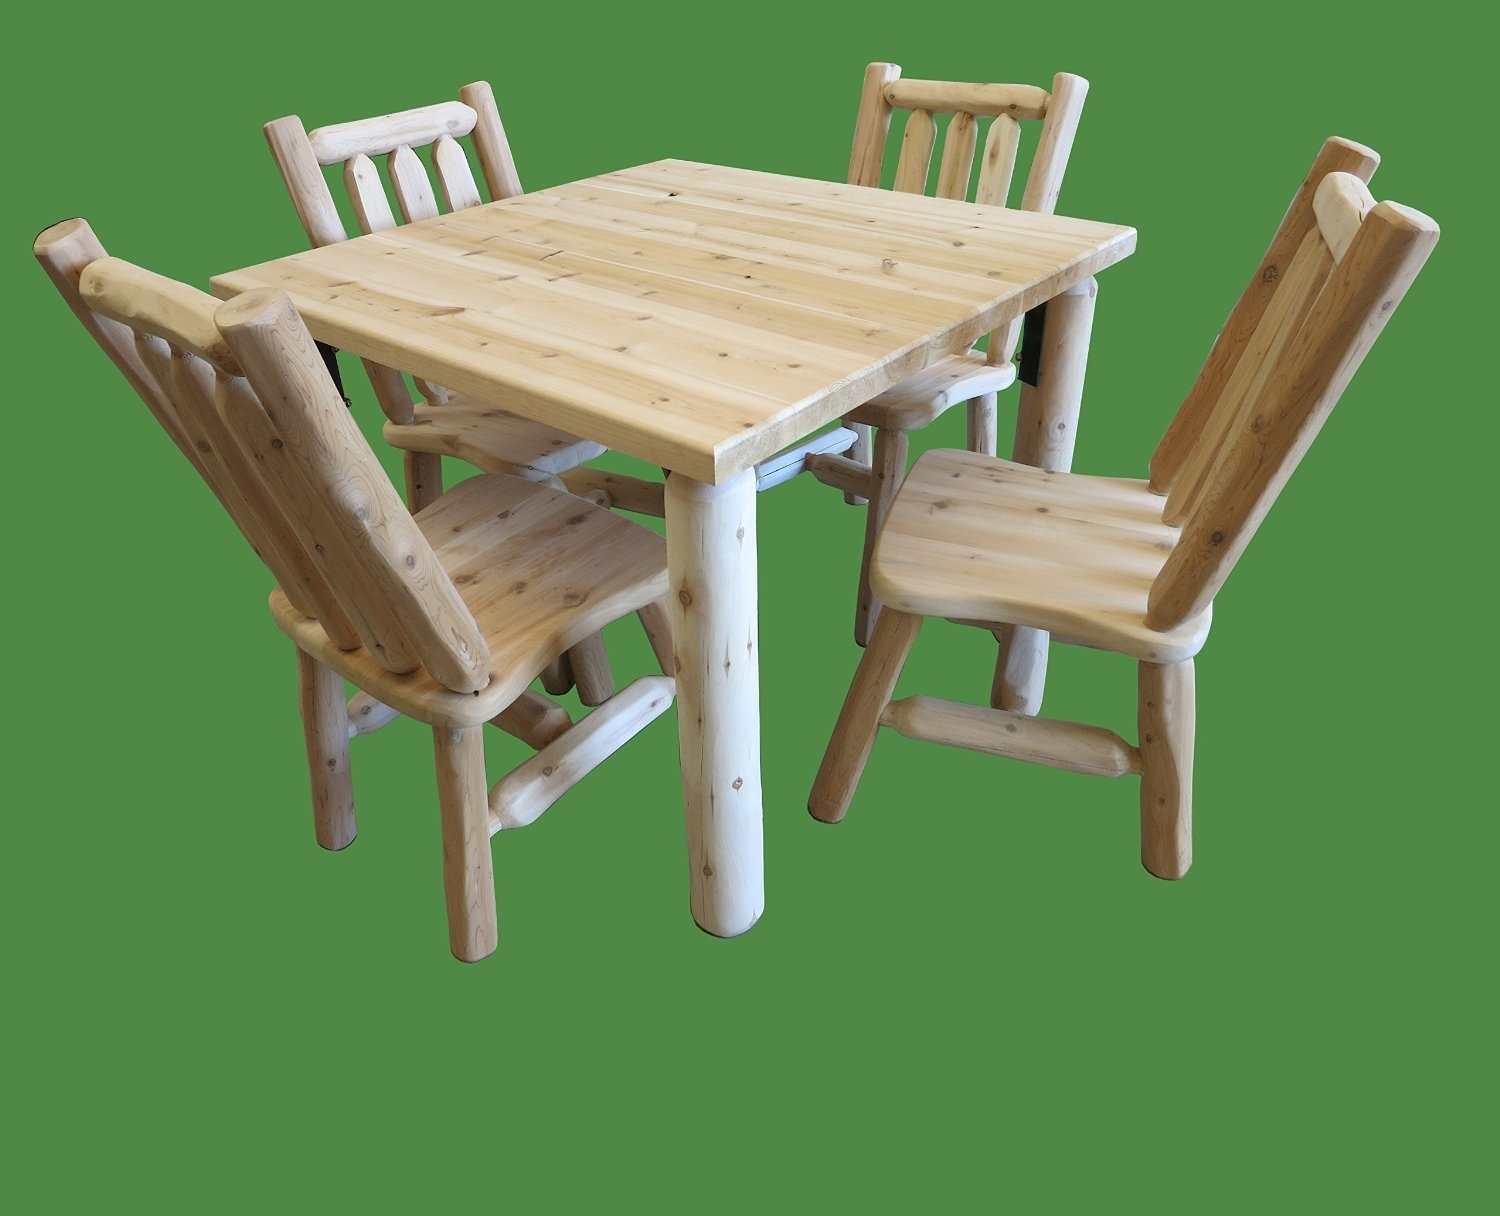 Green Cedar Dining Chairs In Latest Buy Midwest Log Furniture – Northern White Cedar Log Dining Table (#8 of 20)